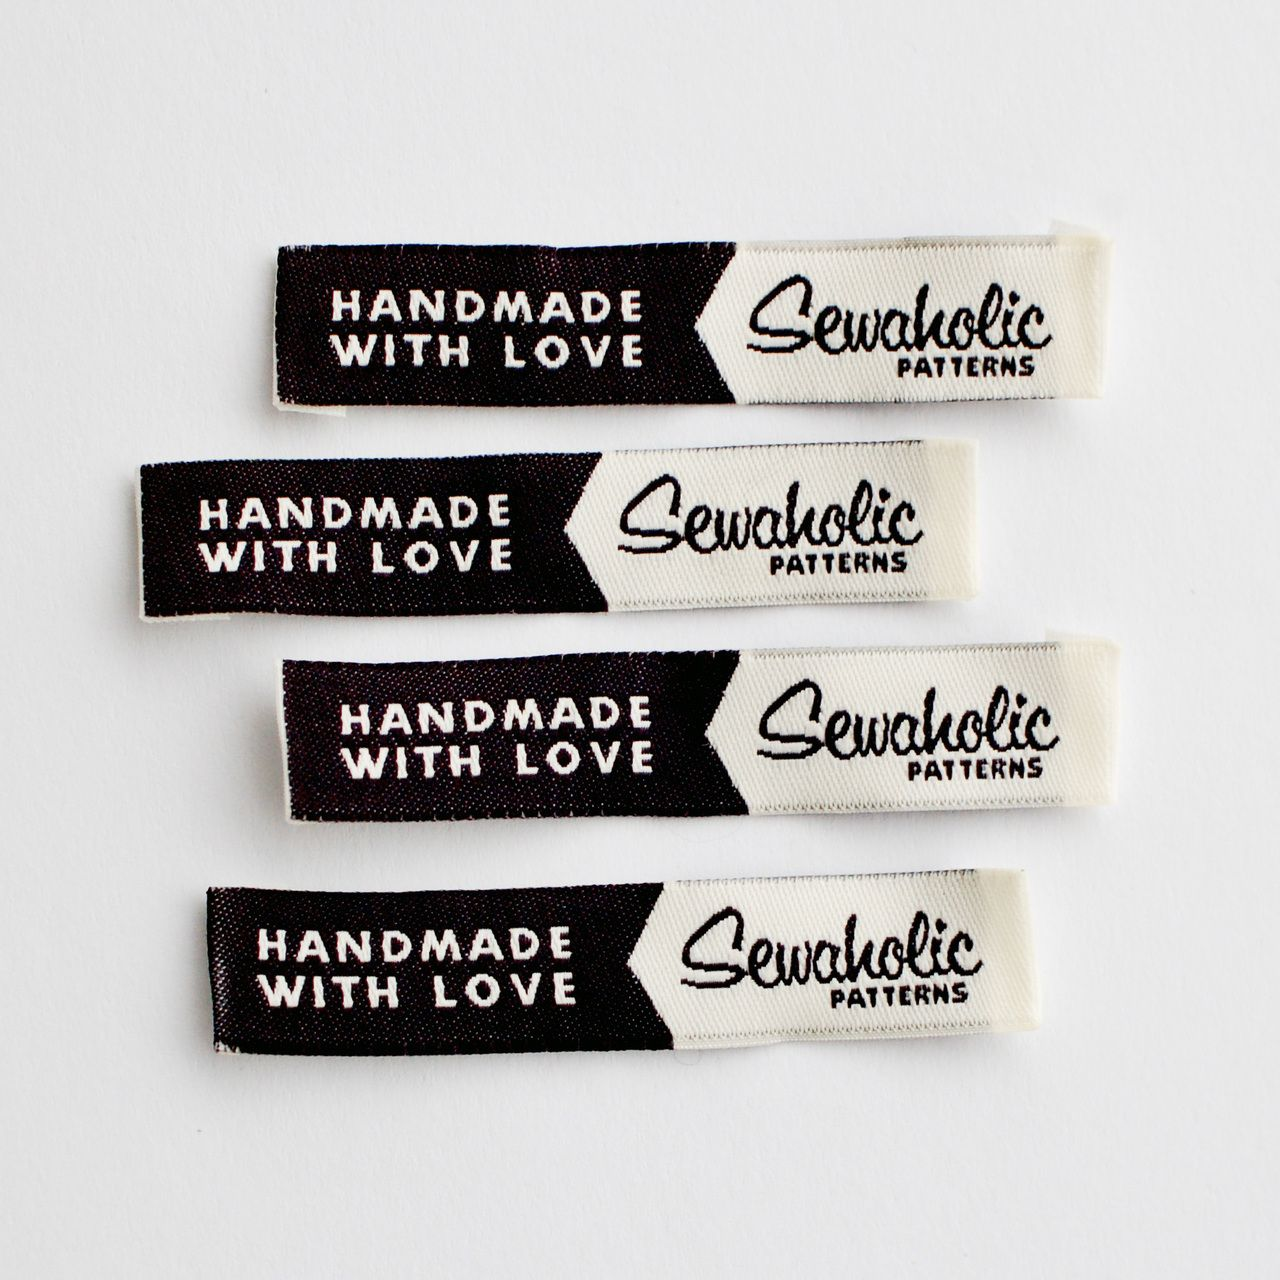 Handmade With Love Sewaholic Woven Clothing Label